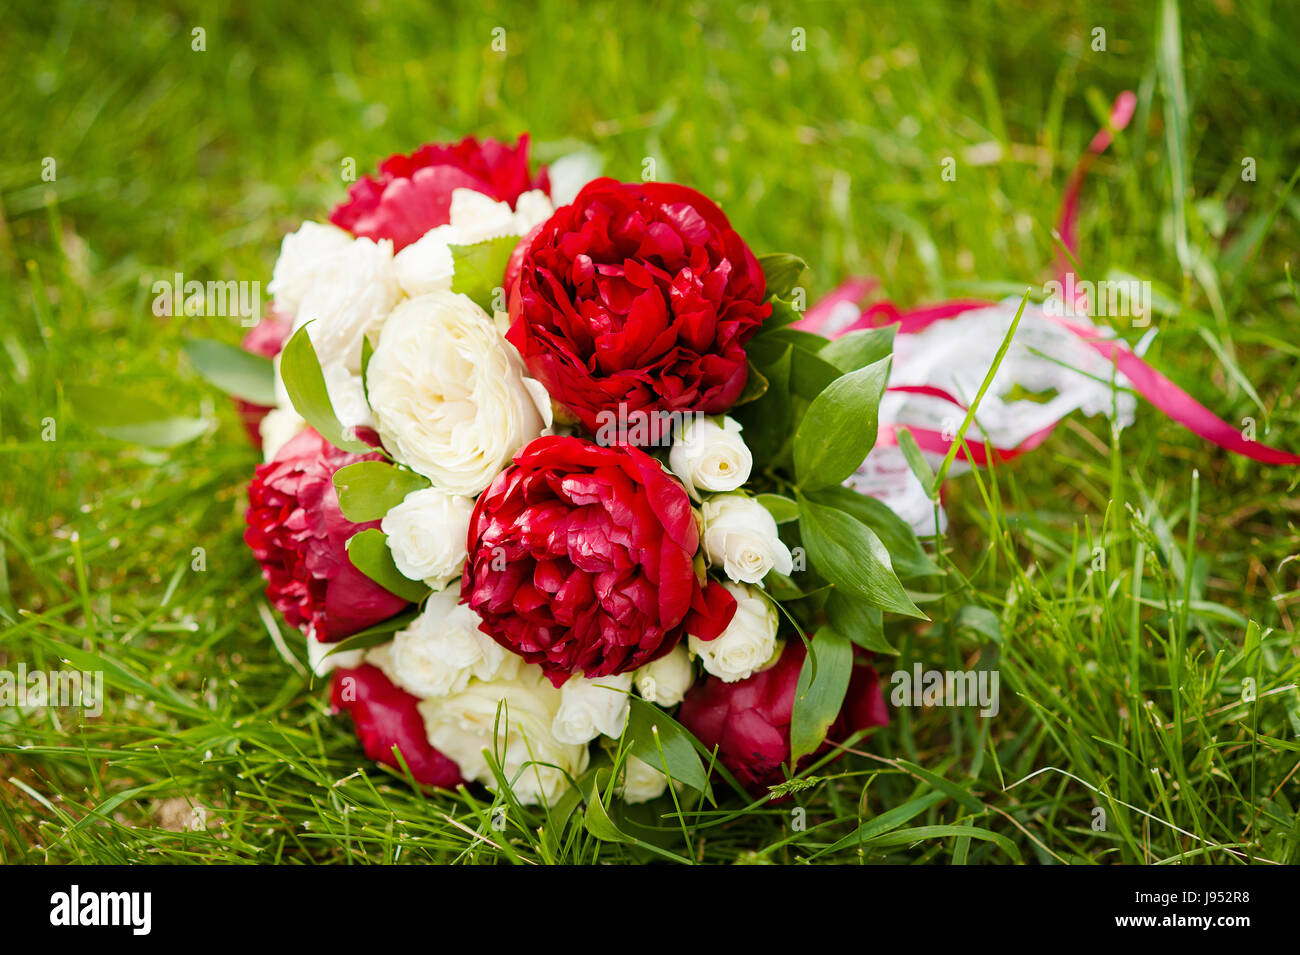 Spring Wedding Bouquet From Burgundy Peonies And White Roses Wedding Stock Photo Alamy